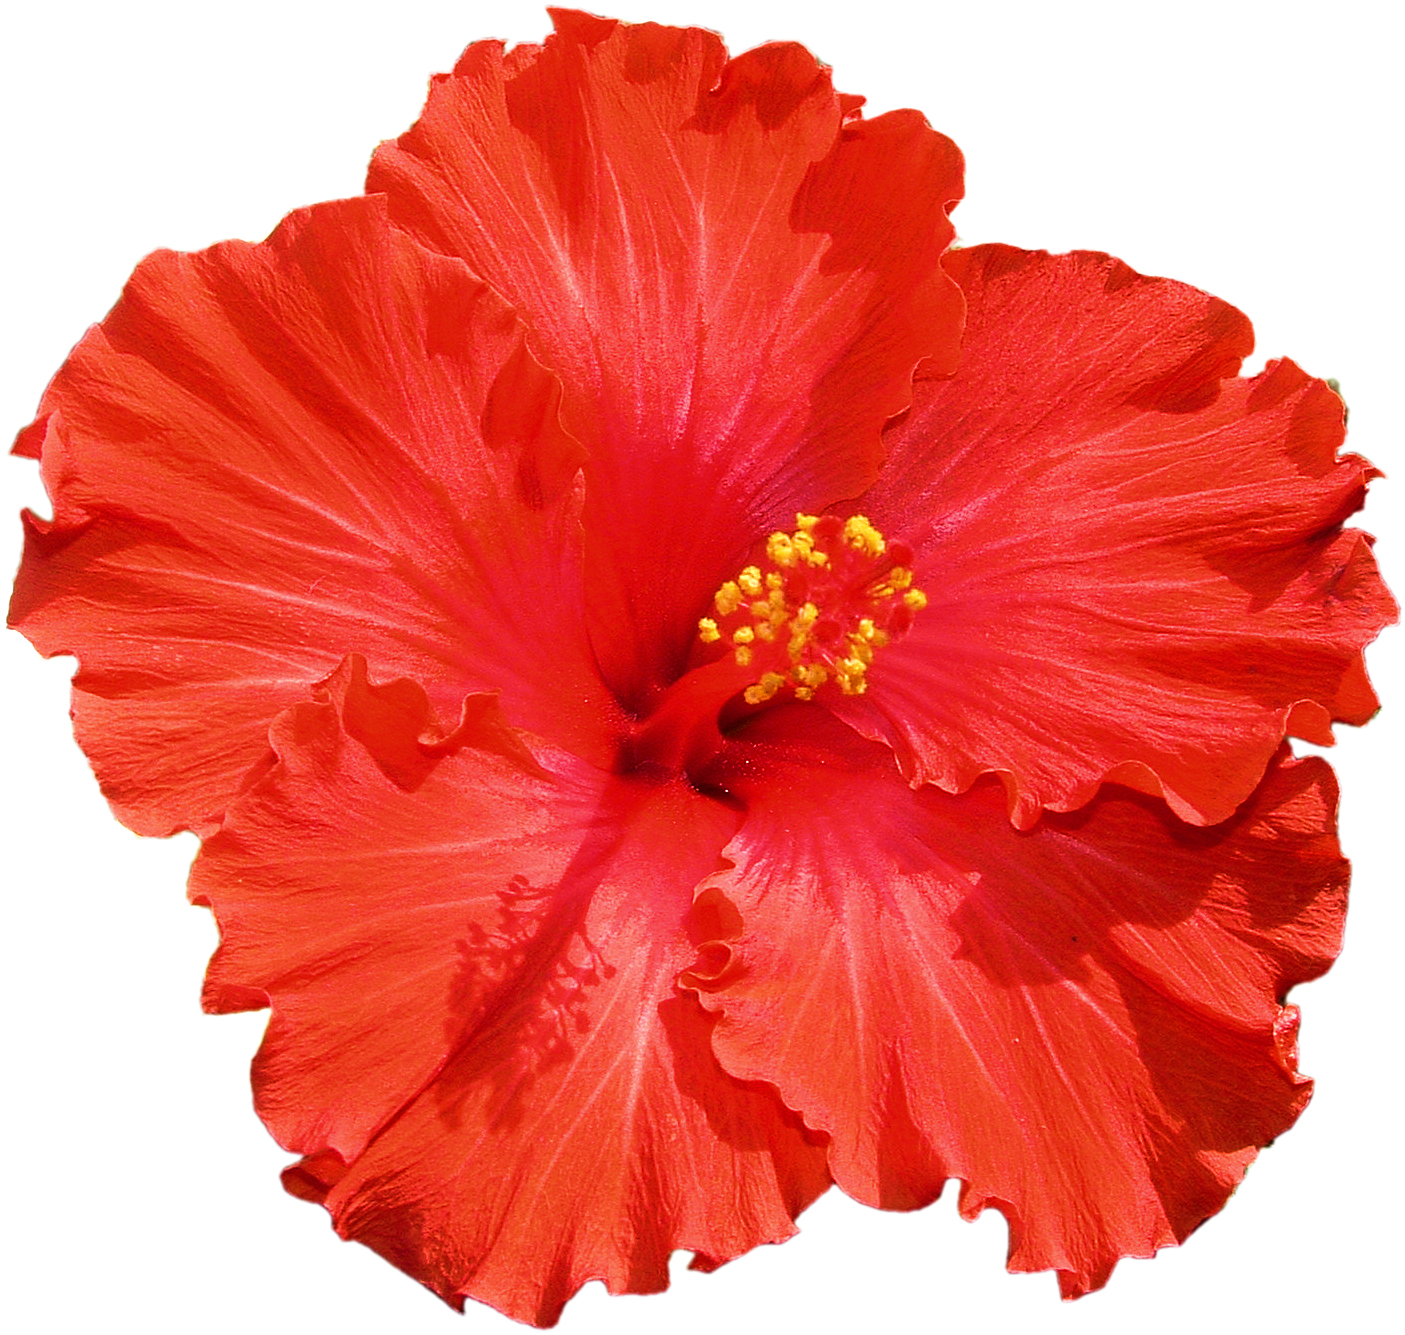 Hibiscus   Free Images At Clker Com   Vector Clip Art Online Royalty